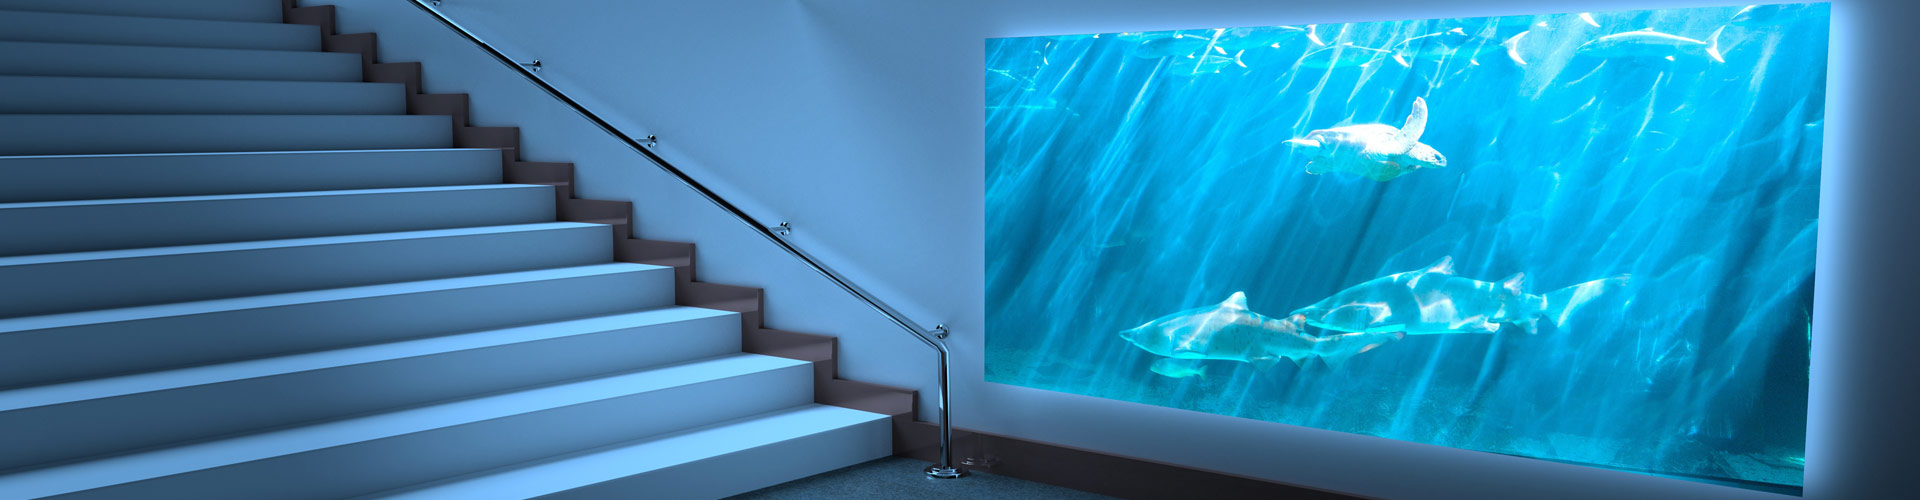 Installation d'aquarium H²O Design inc.